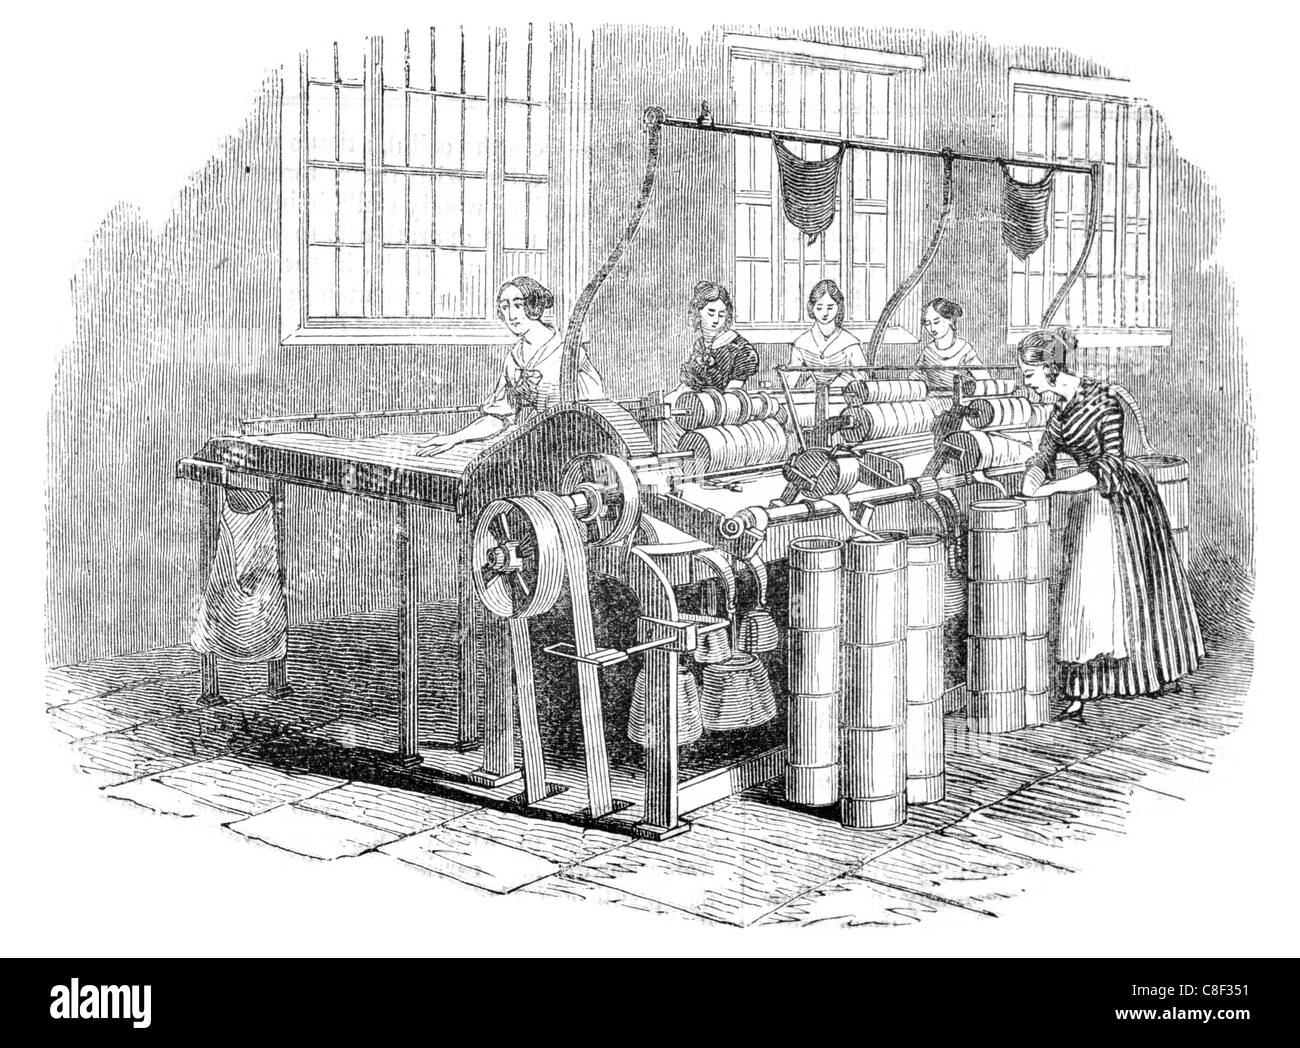 flax drawing mill Leeds mills spinning yarn linen weaving weave - Stock Image